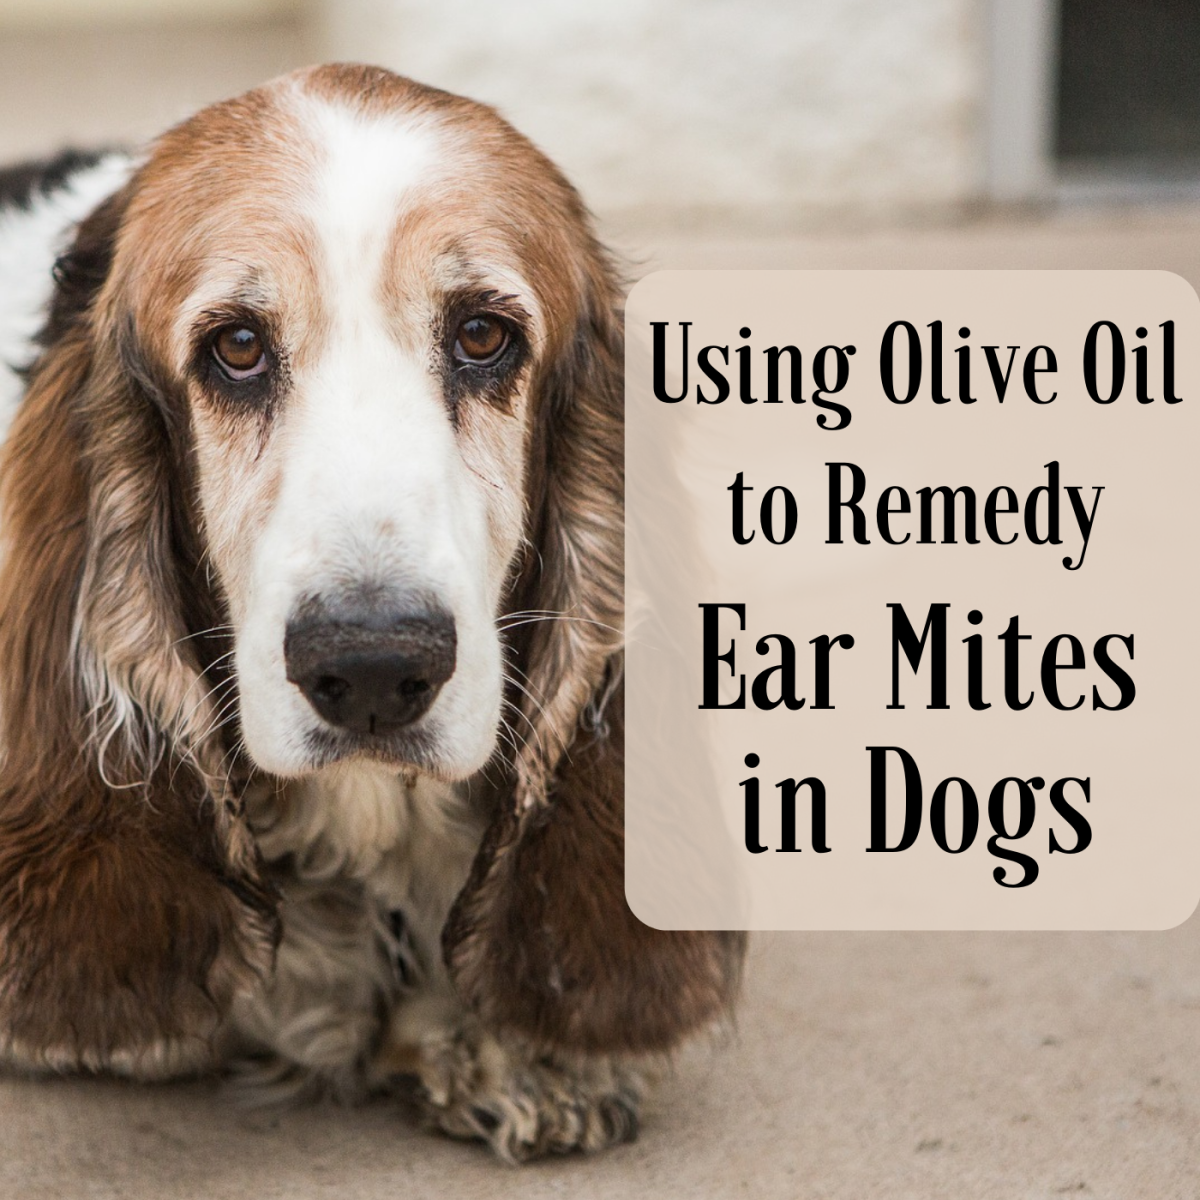 You can use olive oil to kill your dog's ear mites.